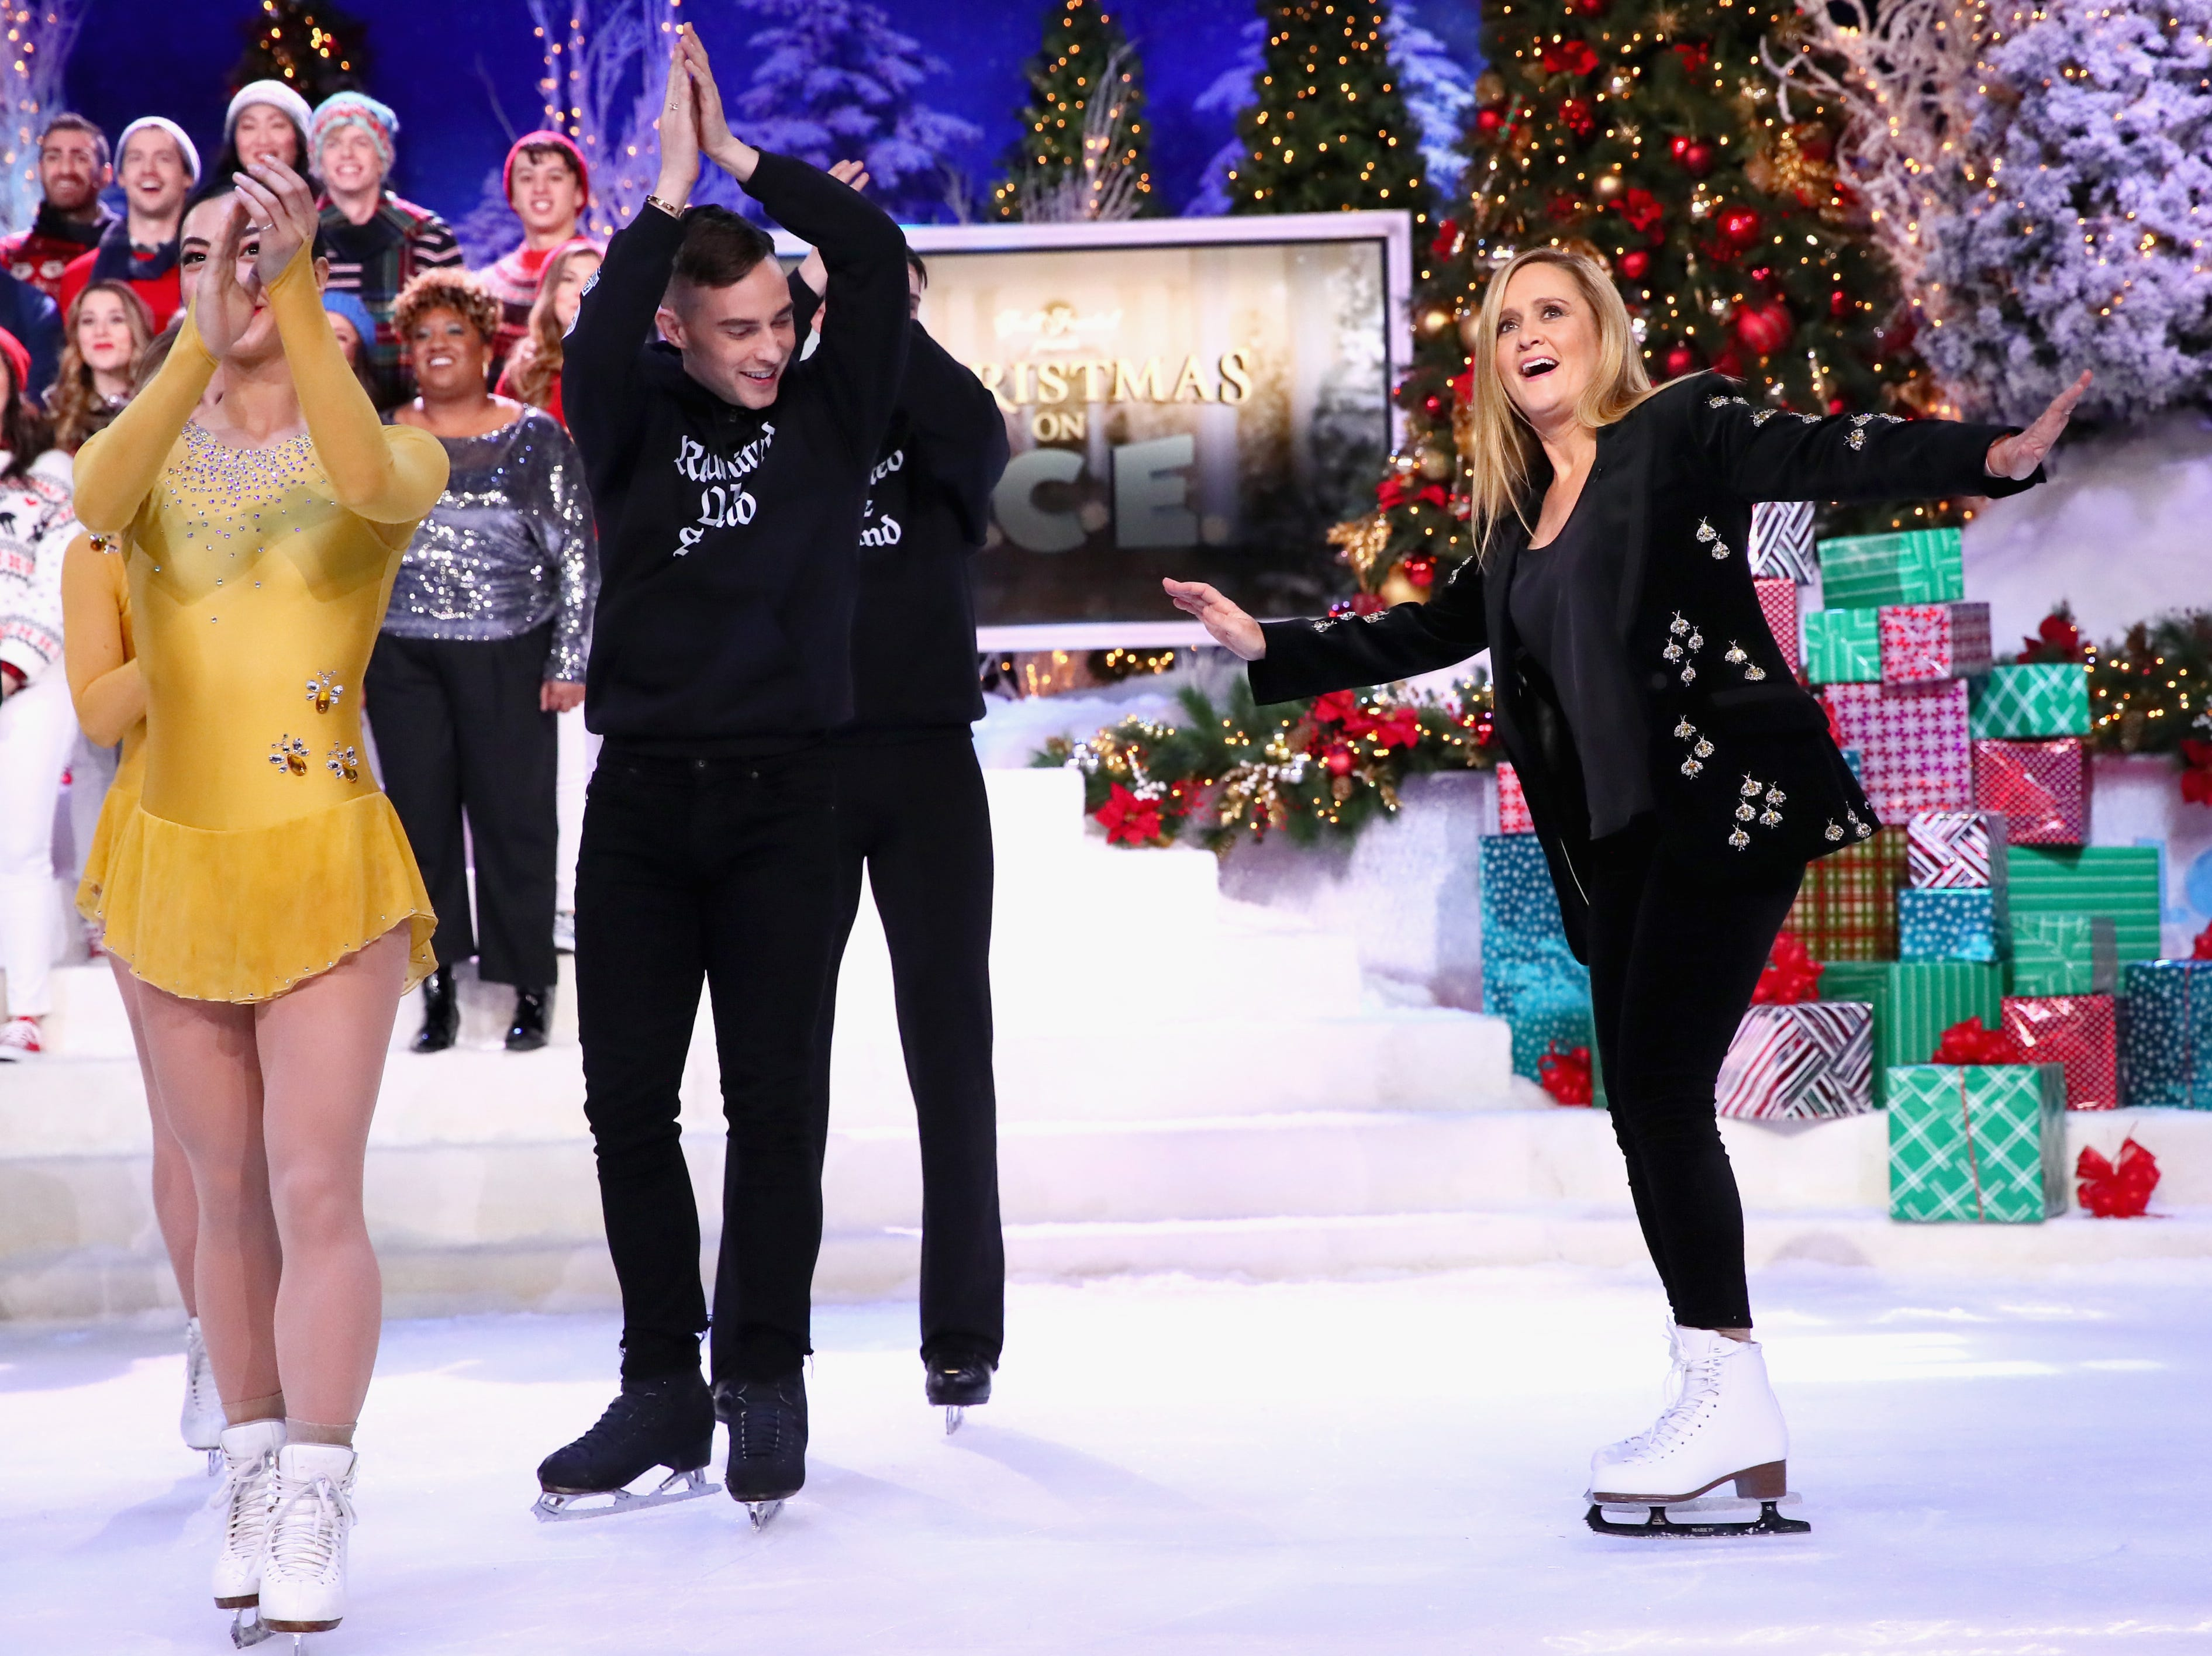 NEW YORK, NY - DECEMBER 17: (L) Adam Rippon and Samantha Bee perform onstage during Full Frontal With Samantha Bee Presents Christmas On I.C.E. at PlayStation Theater on December 17, 2018 in New York City. 477176  (Photo by Astrid Stawiarz/Getty Images for TBS) ORG XMIT: 775269219 ORIG FILE ID: 1074341072